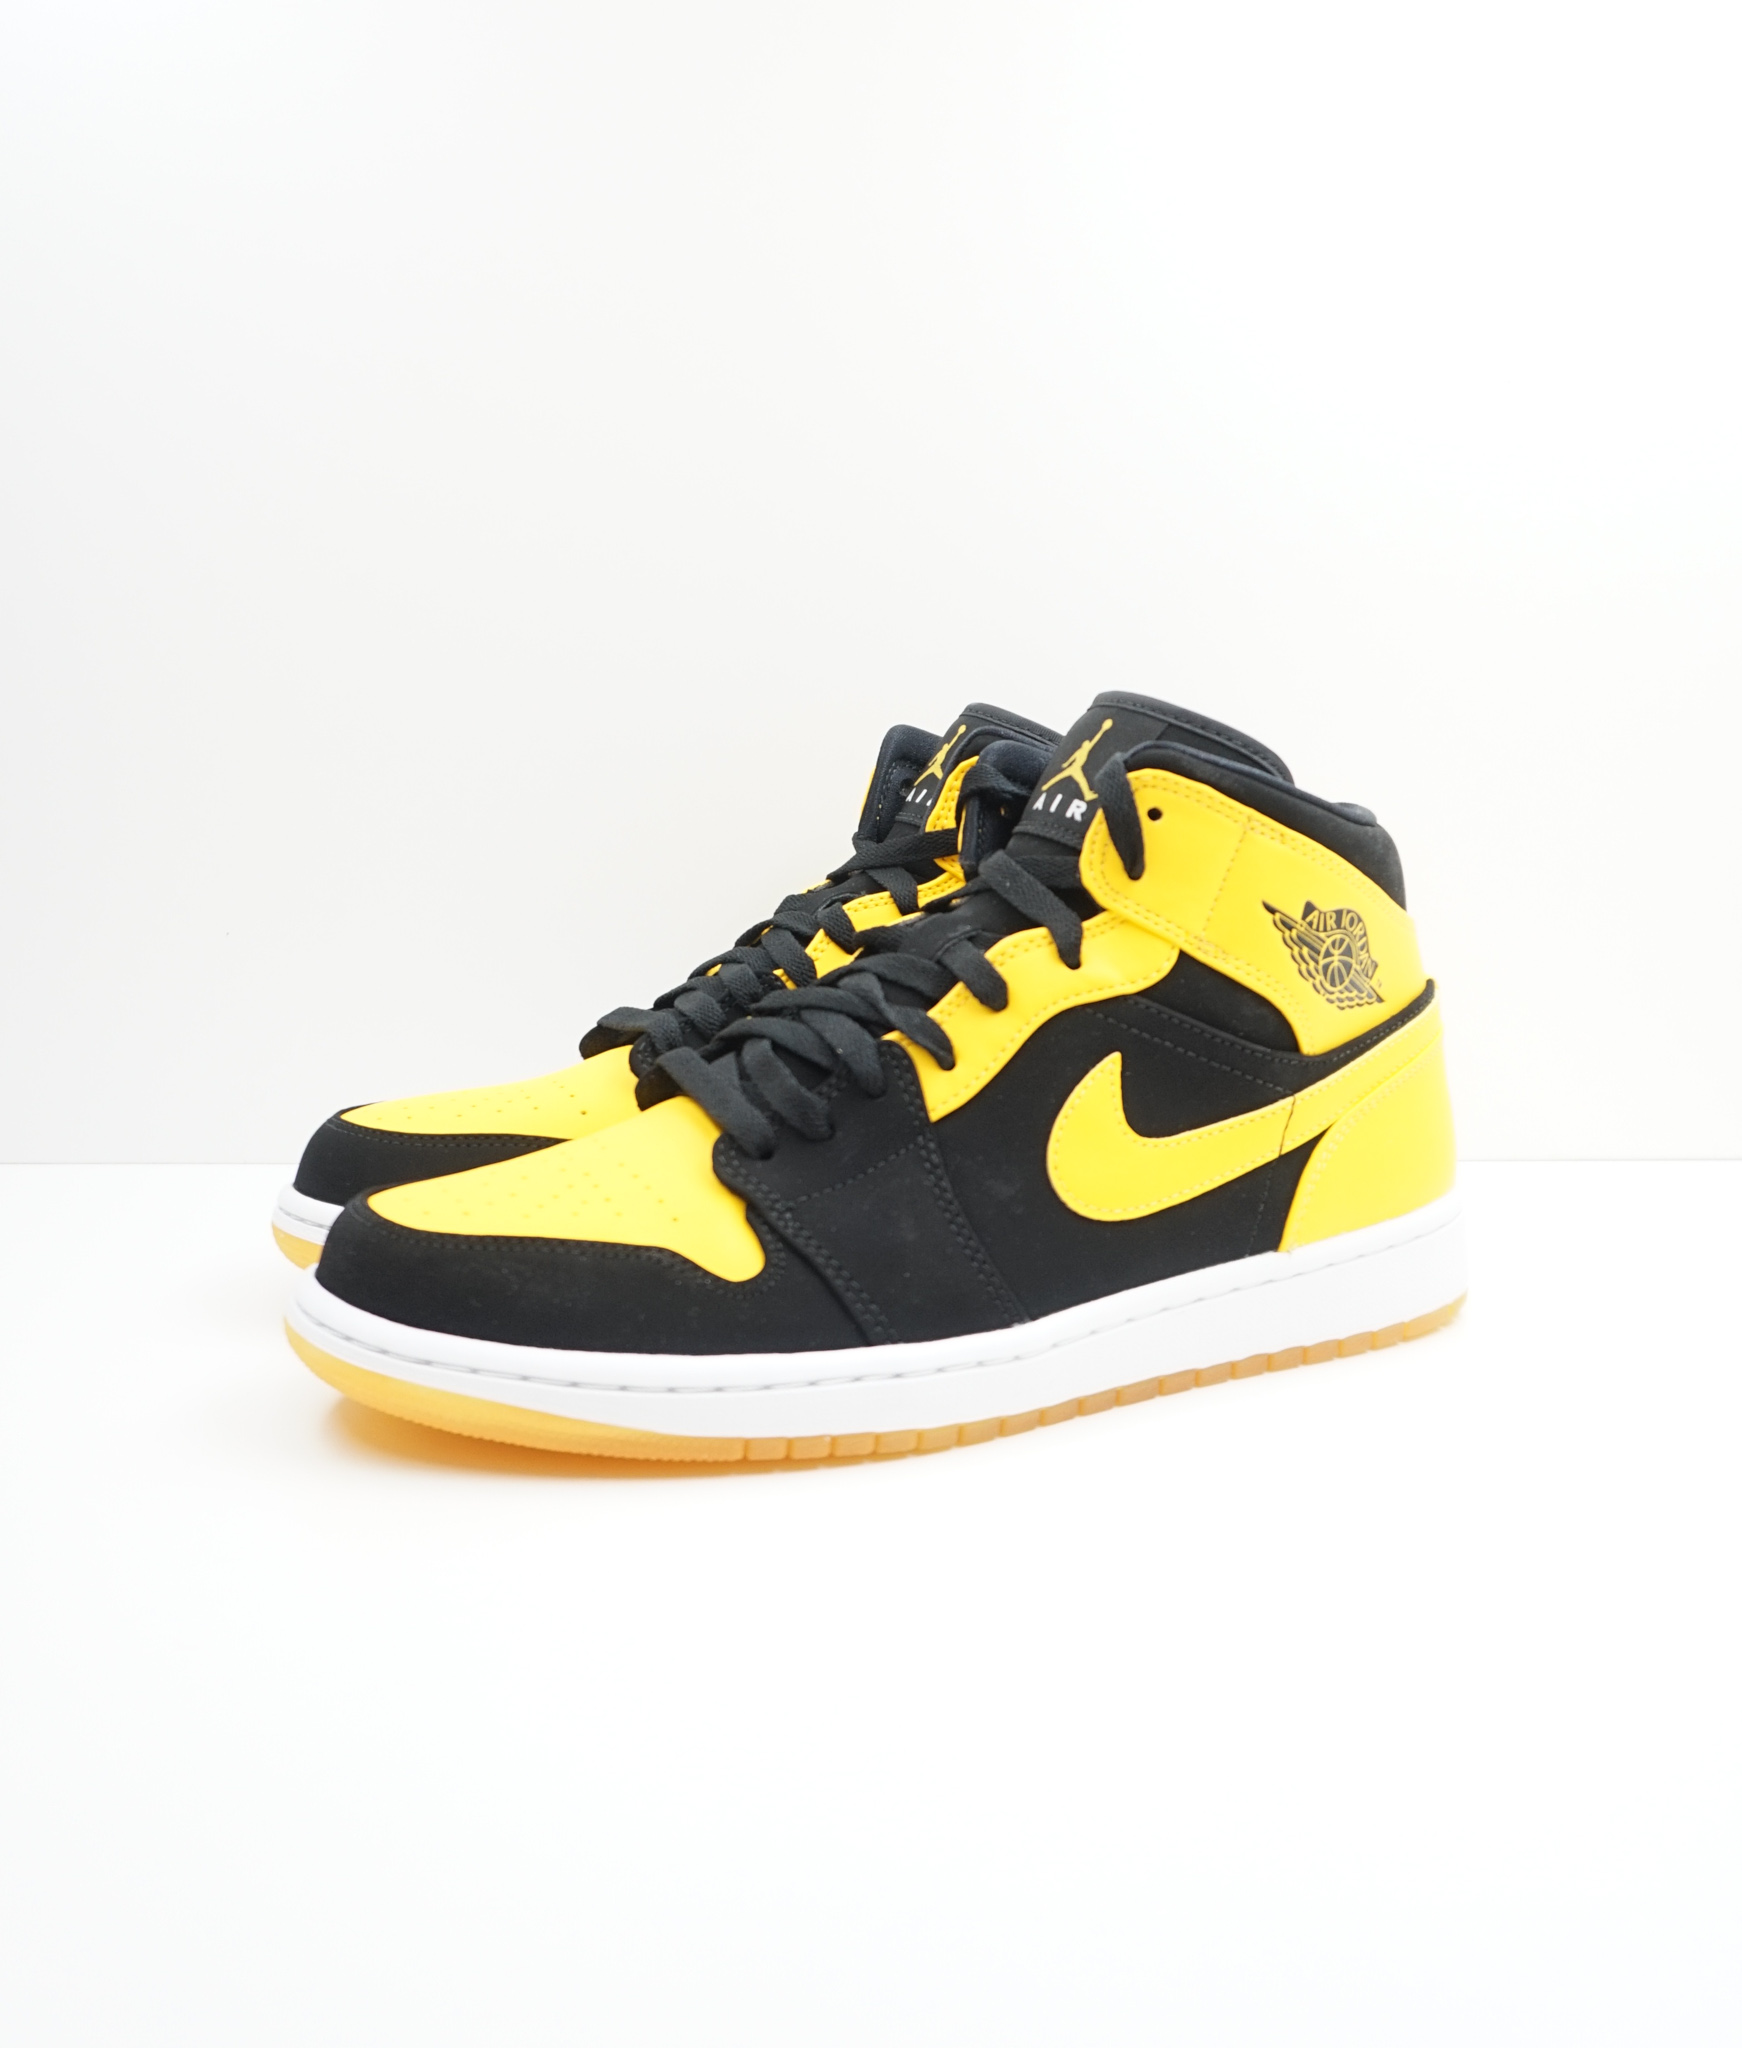 Jordan 1 Retro Mid New Love